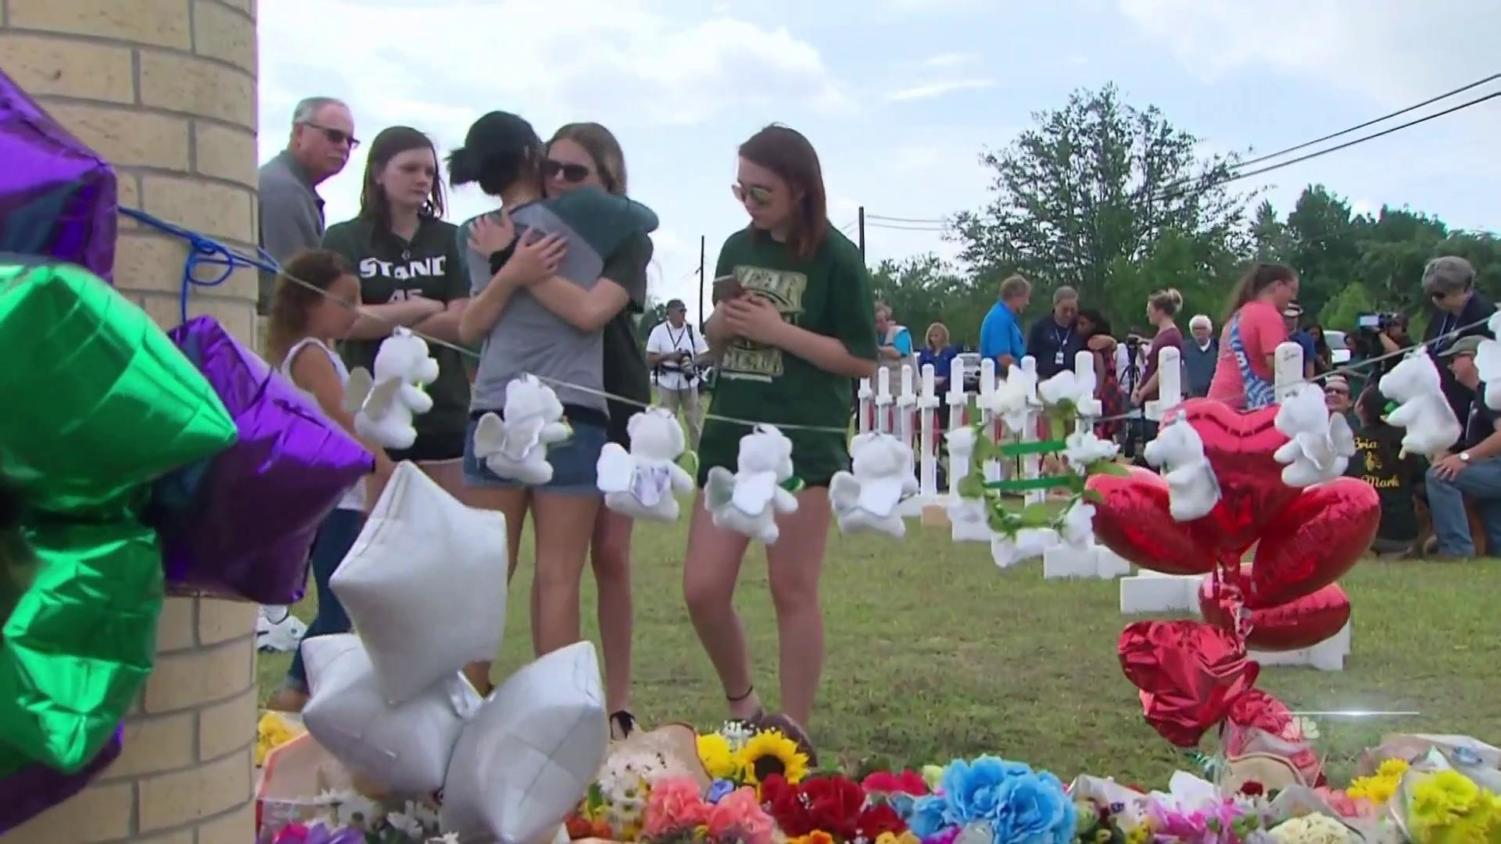 Students+hugging+and+coping+at+the+memorial+service.